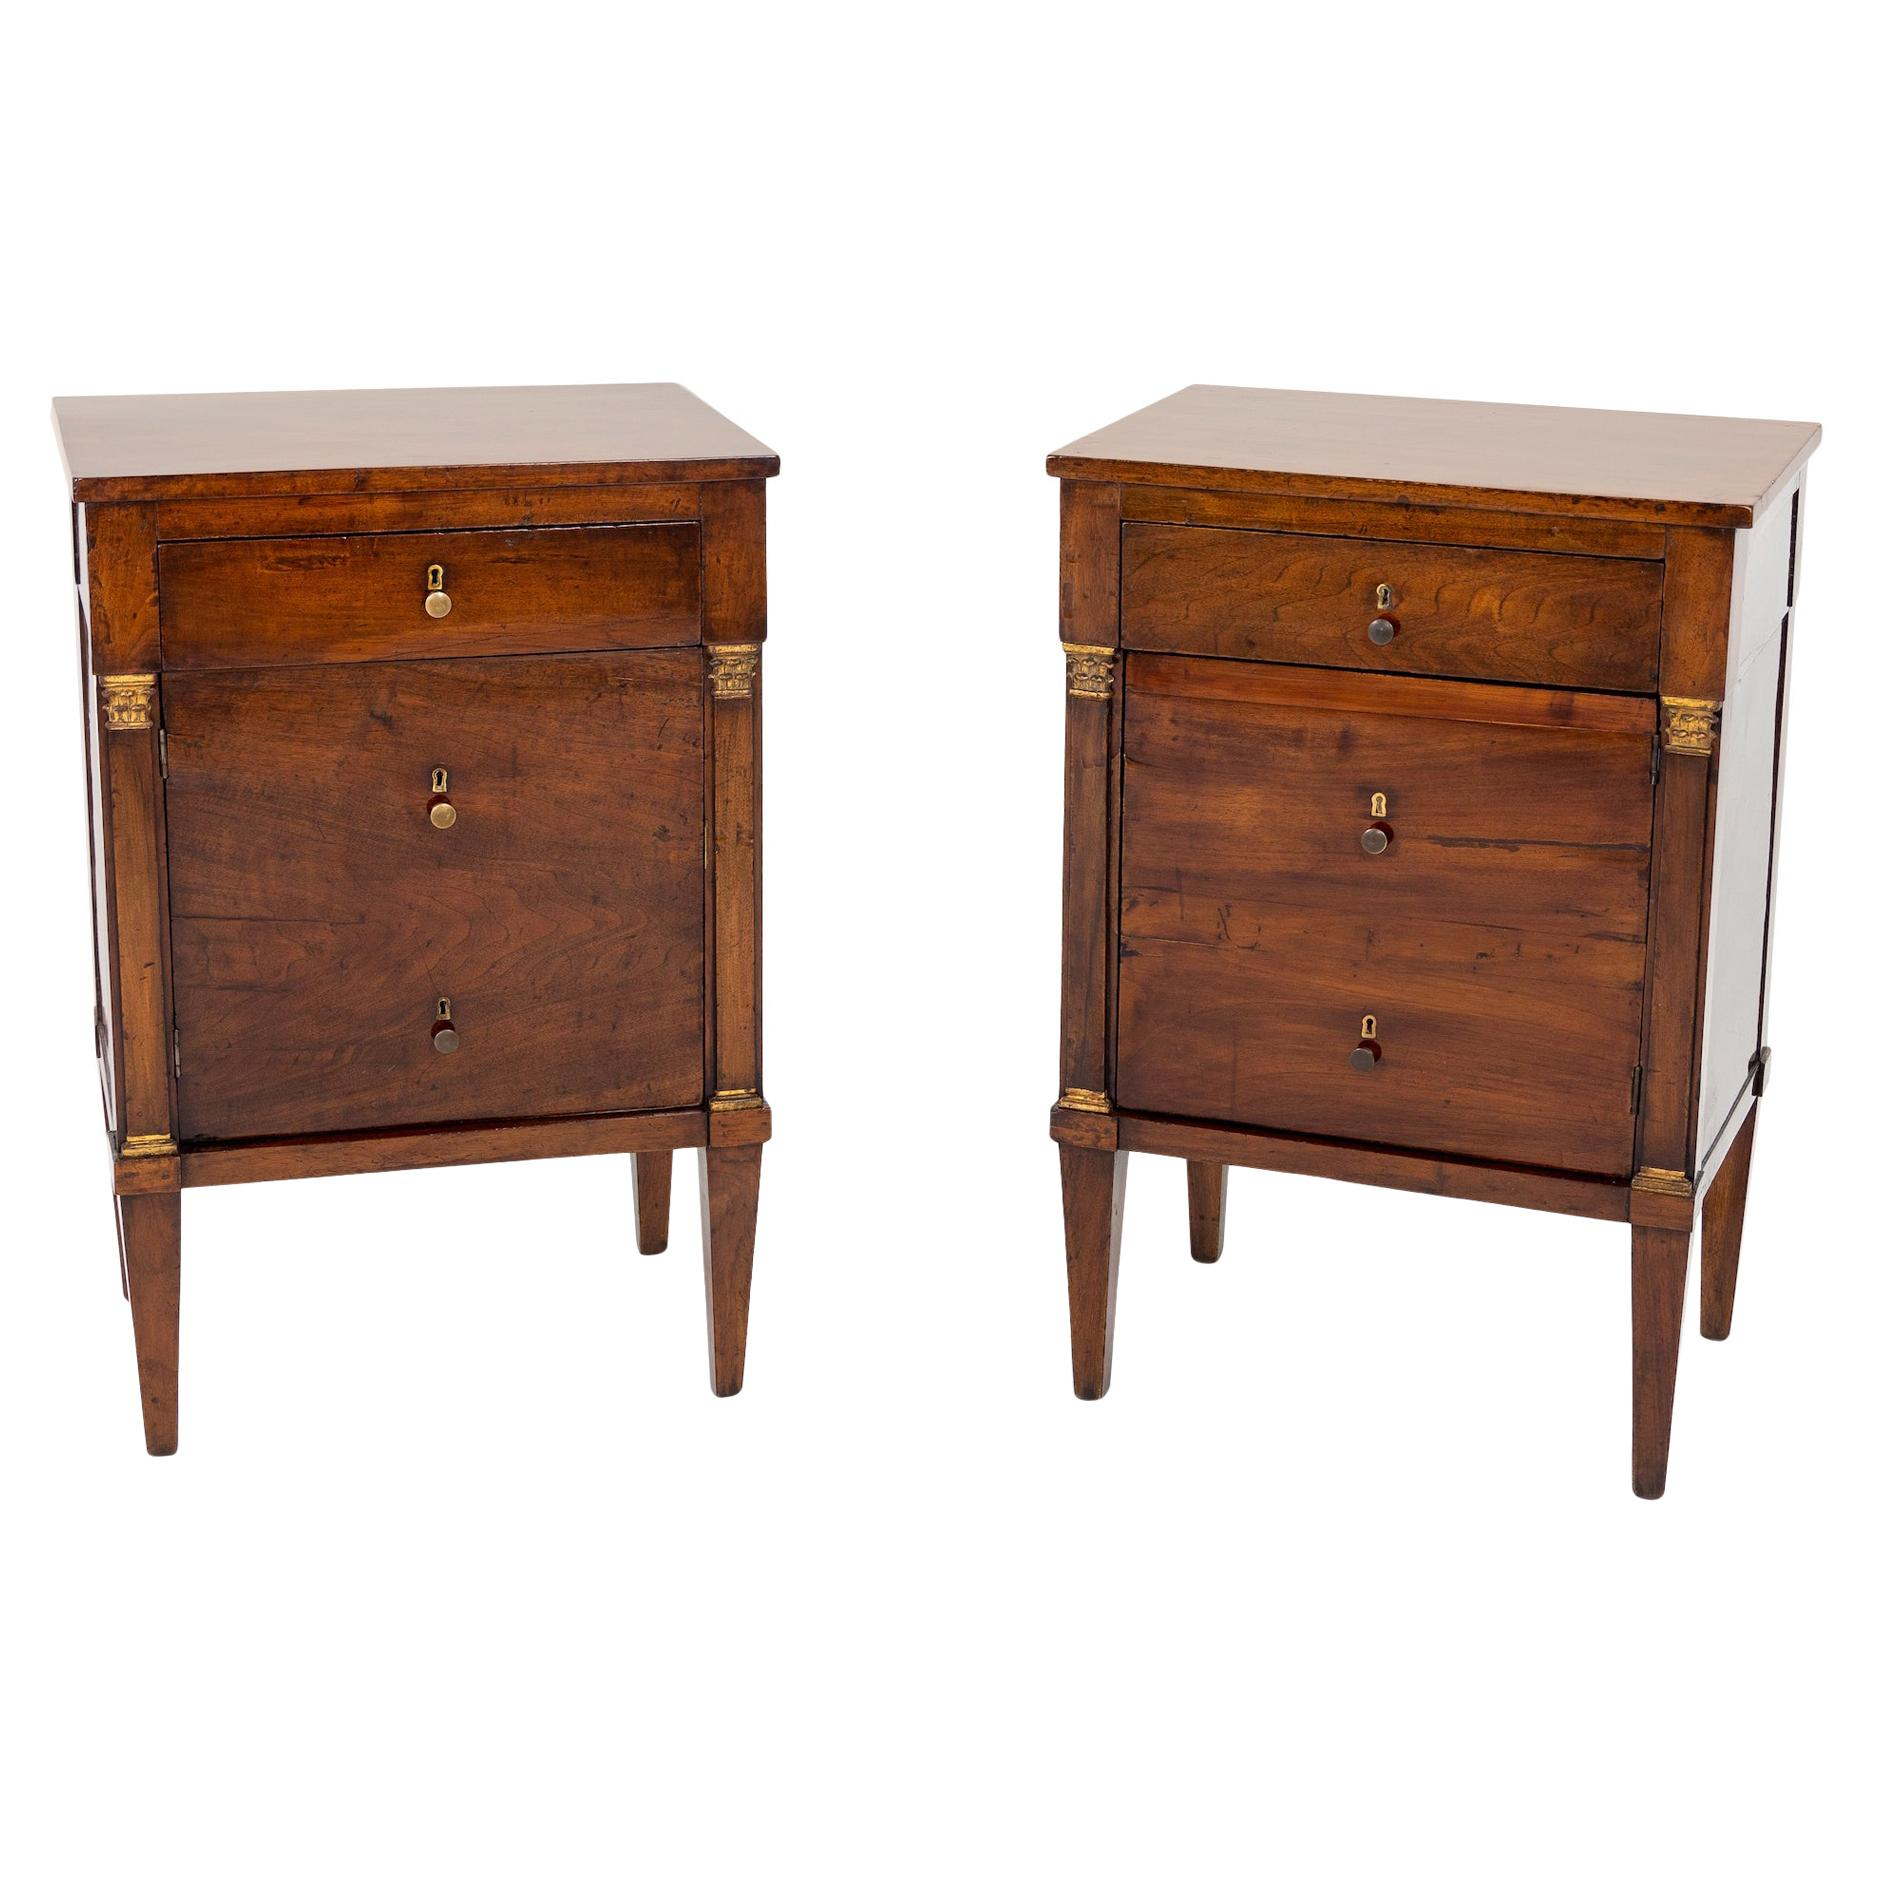 Pair of Neoclassical Nightstands, Italy, circa 1810